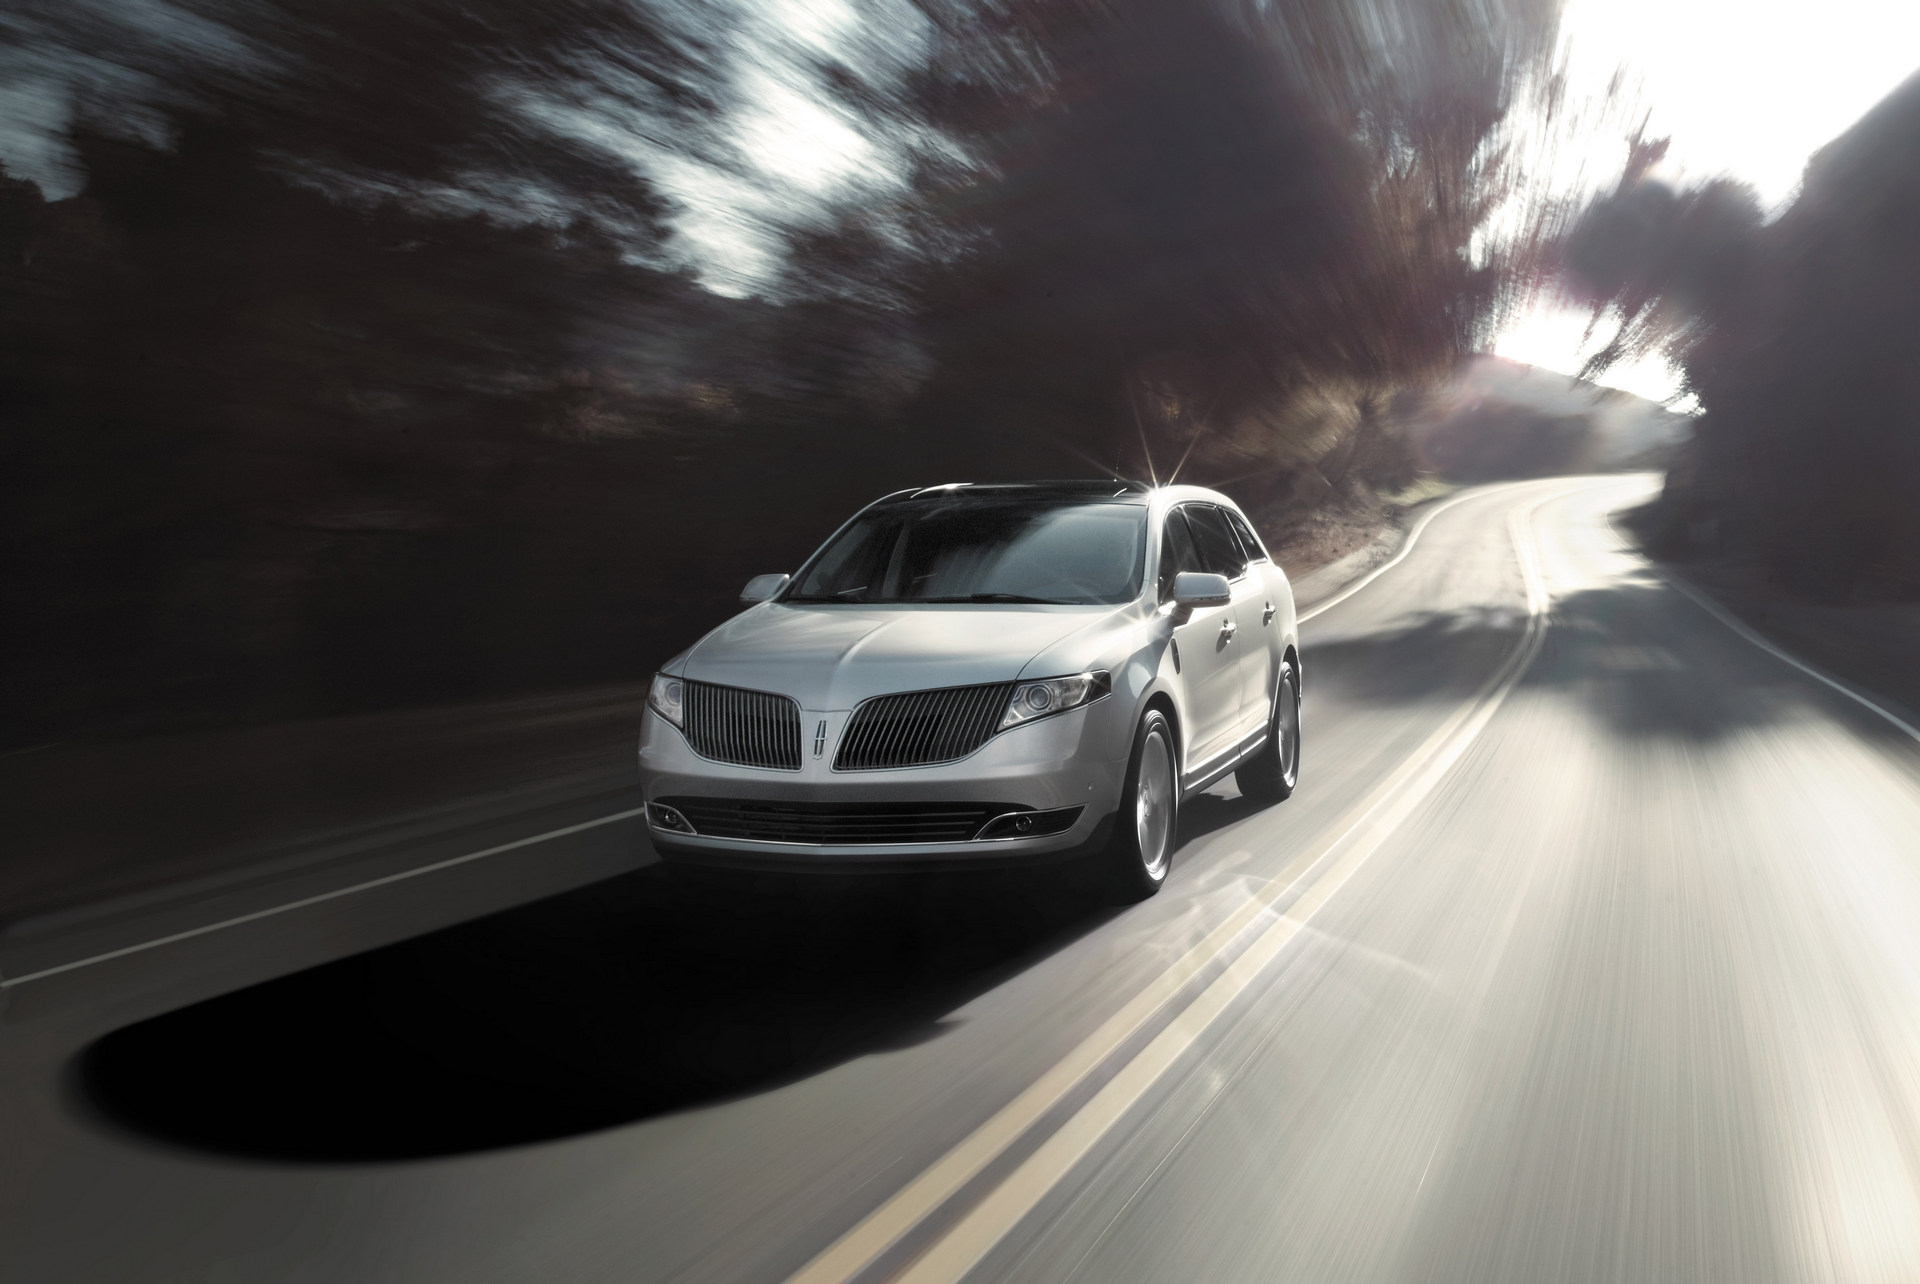 2015 Lincoln MKT © Ford Motor Company